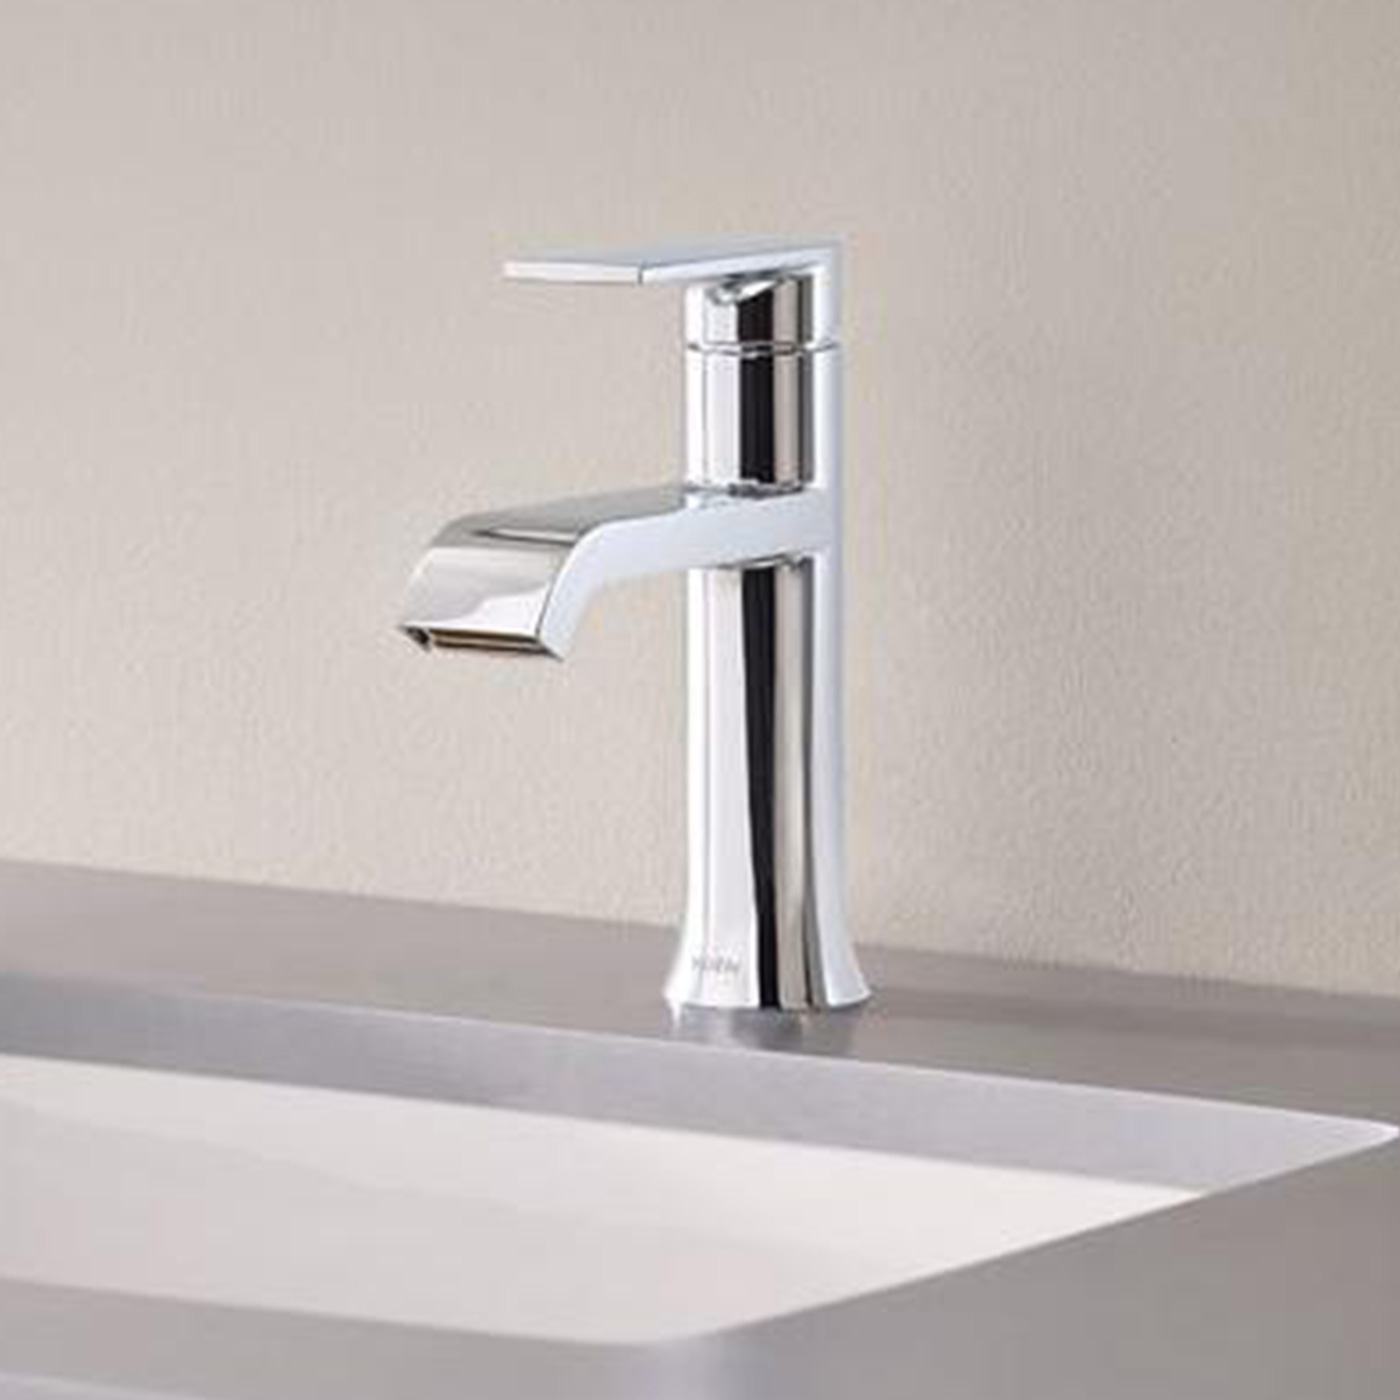 spout mixer ebay bath tap faucets mount tub brushed bathtub bhp deck waterfall faucet nickel set